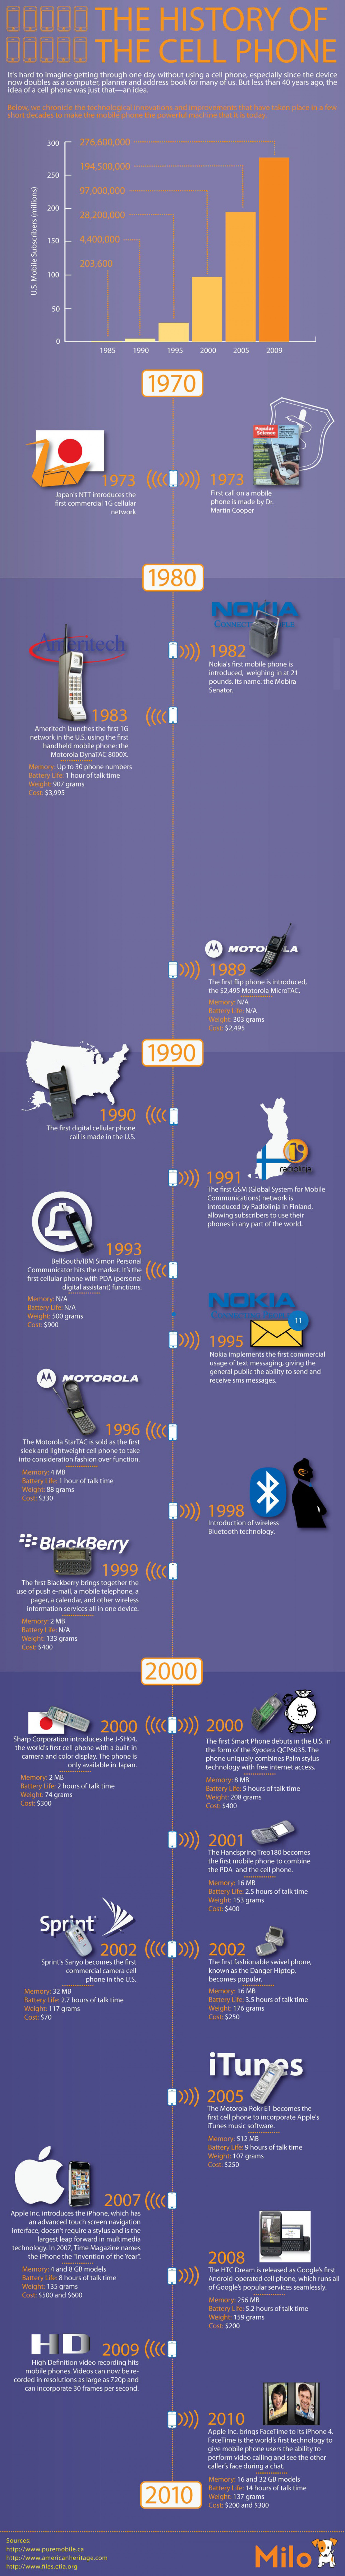 The History of the CellPhone Infographic